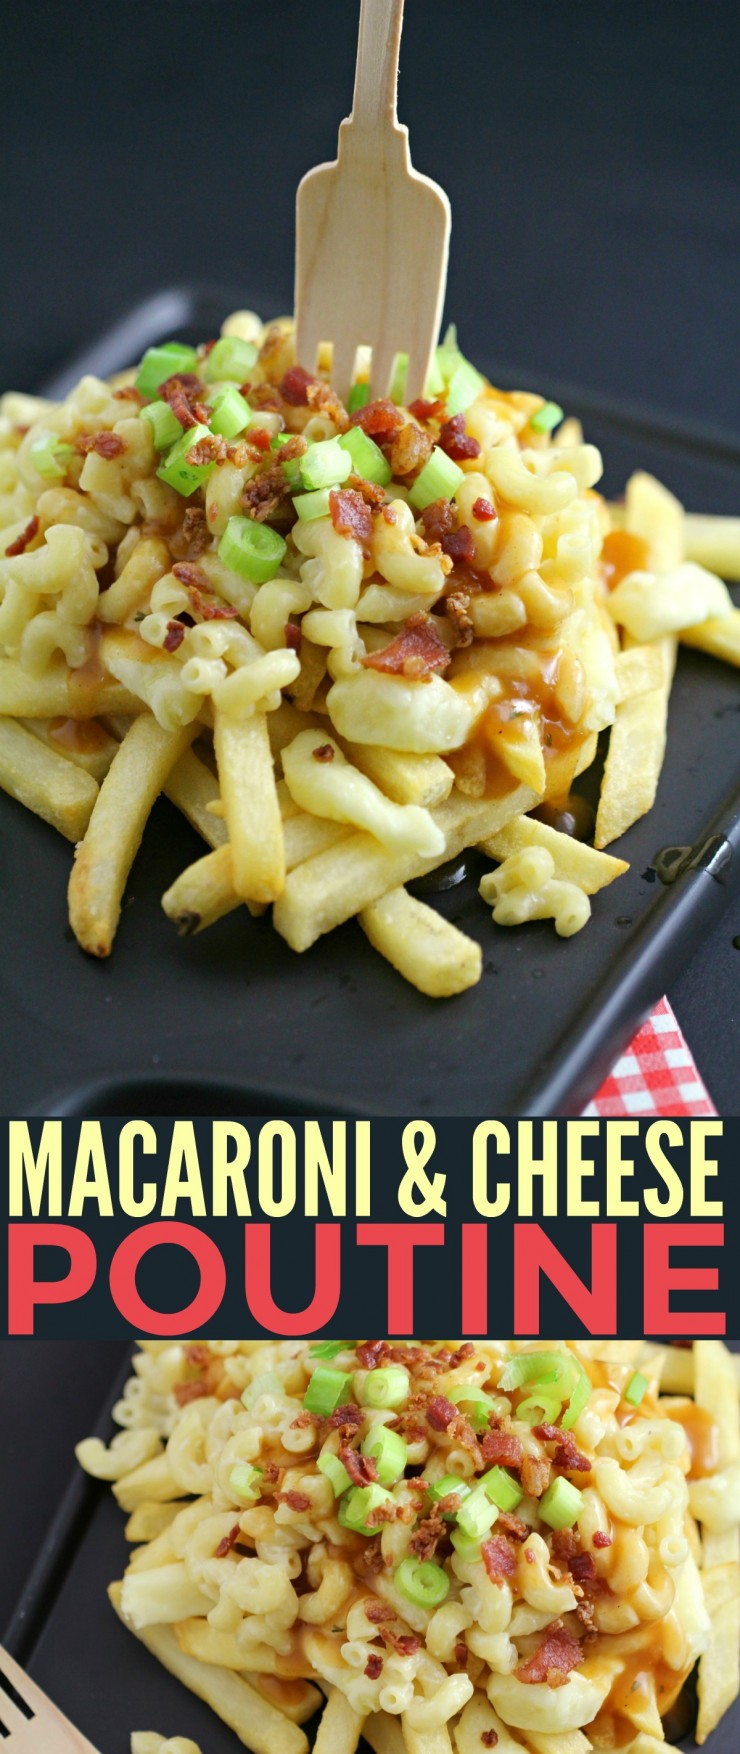 This Macaronia & Chesese Poutine is a comforting dish that starts off with Italpasta white cheddar macaroni & cheese sitting on top a bed of fries that are loaded up with fresh cheese curds, gravy, green onions and finished off with bacon.